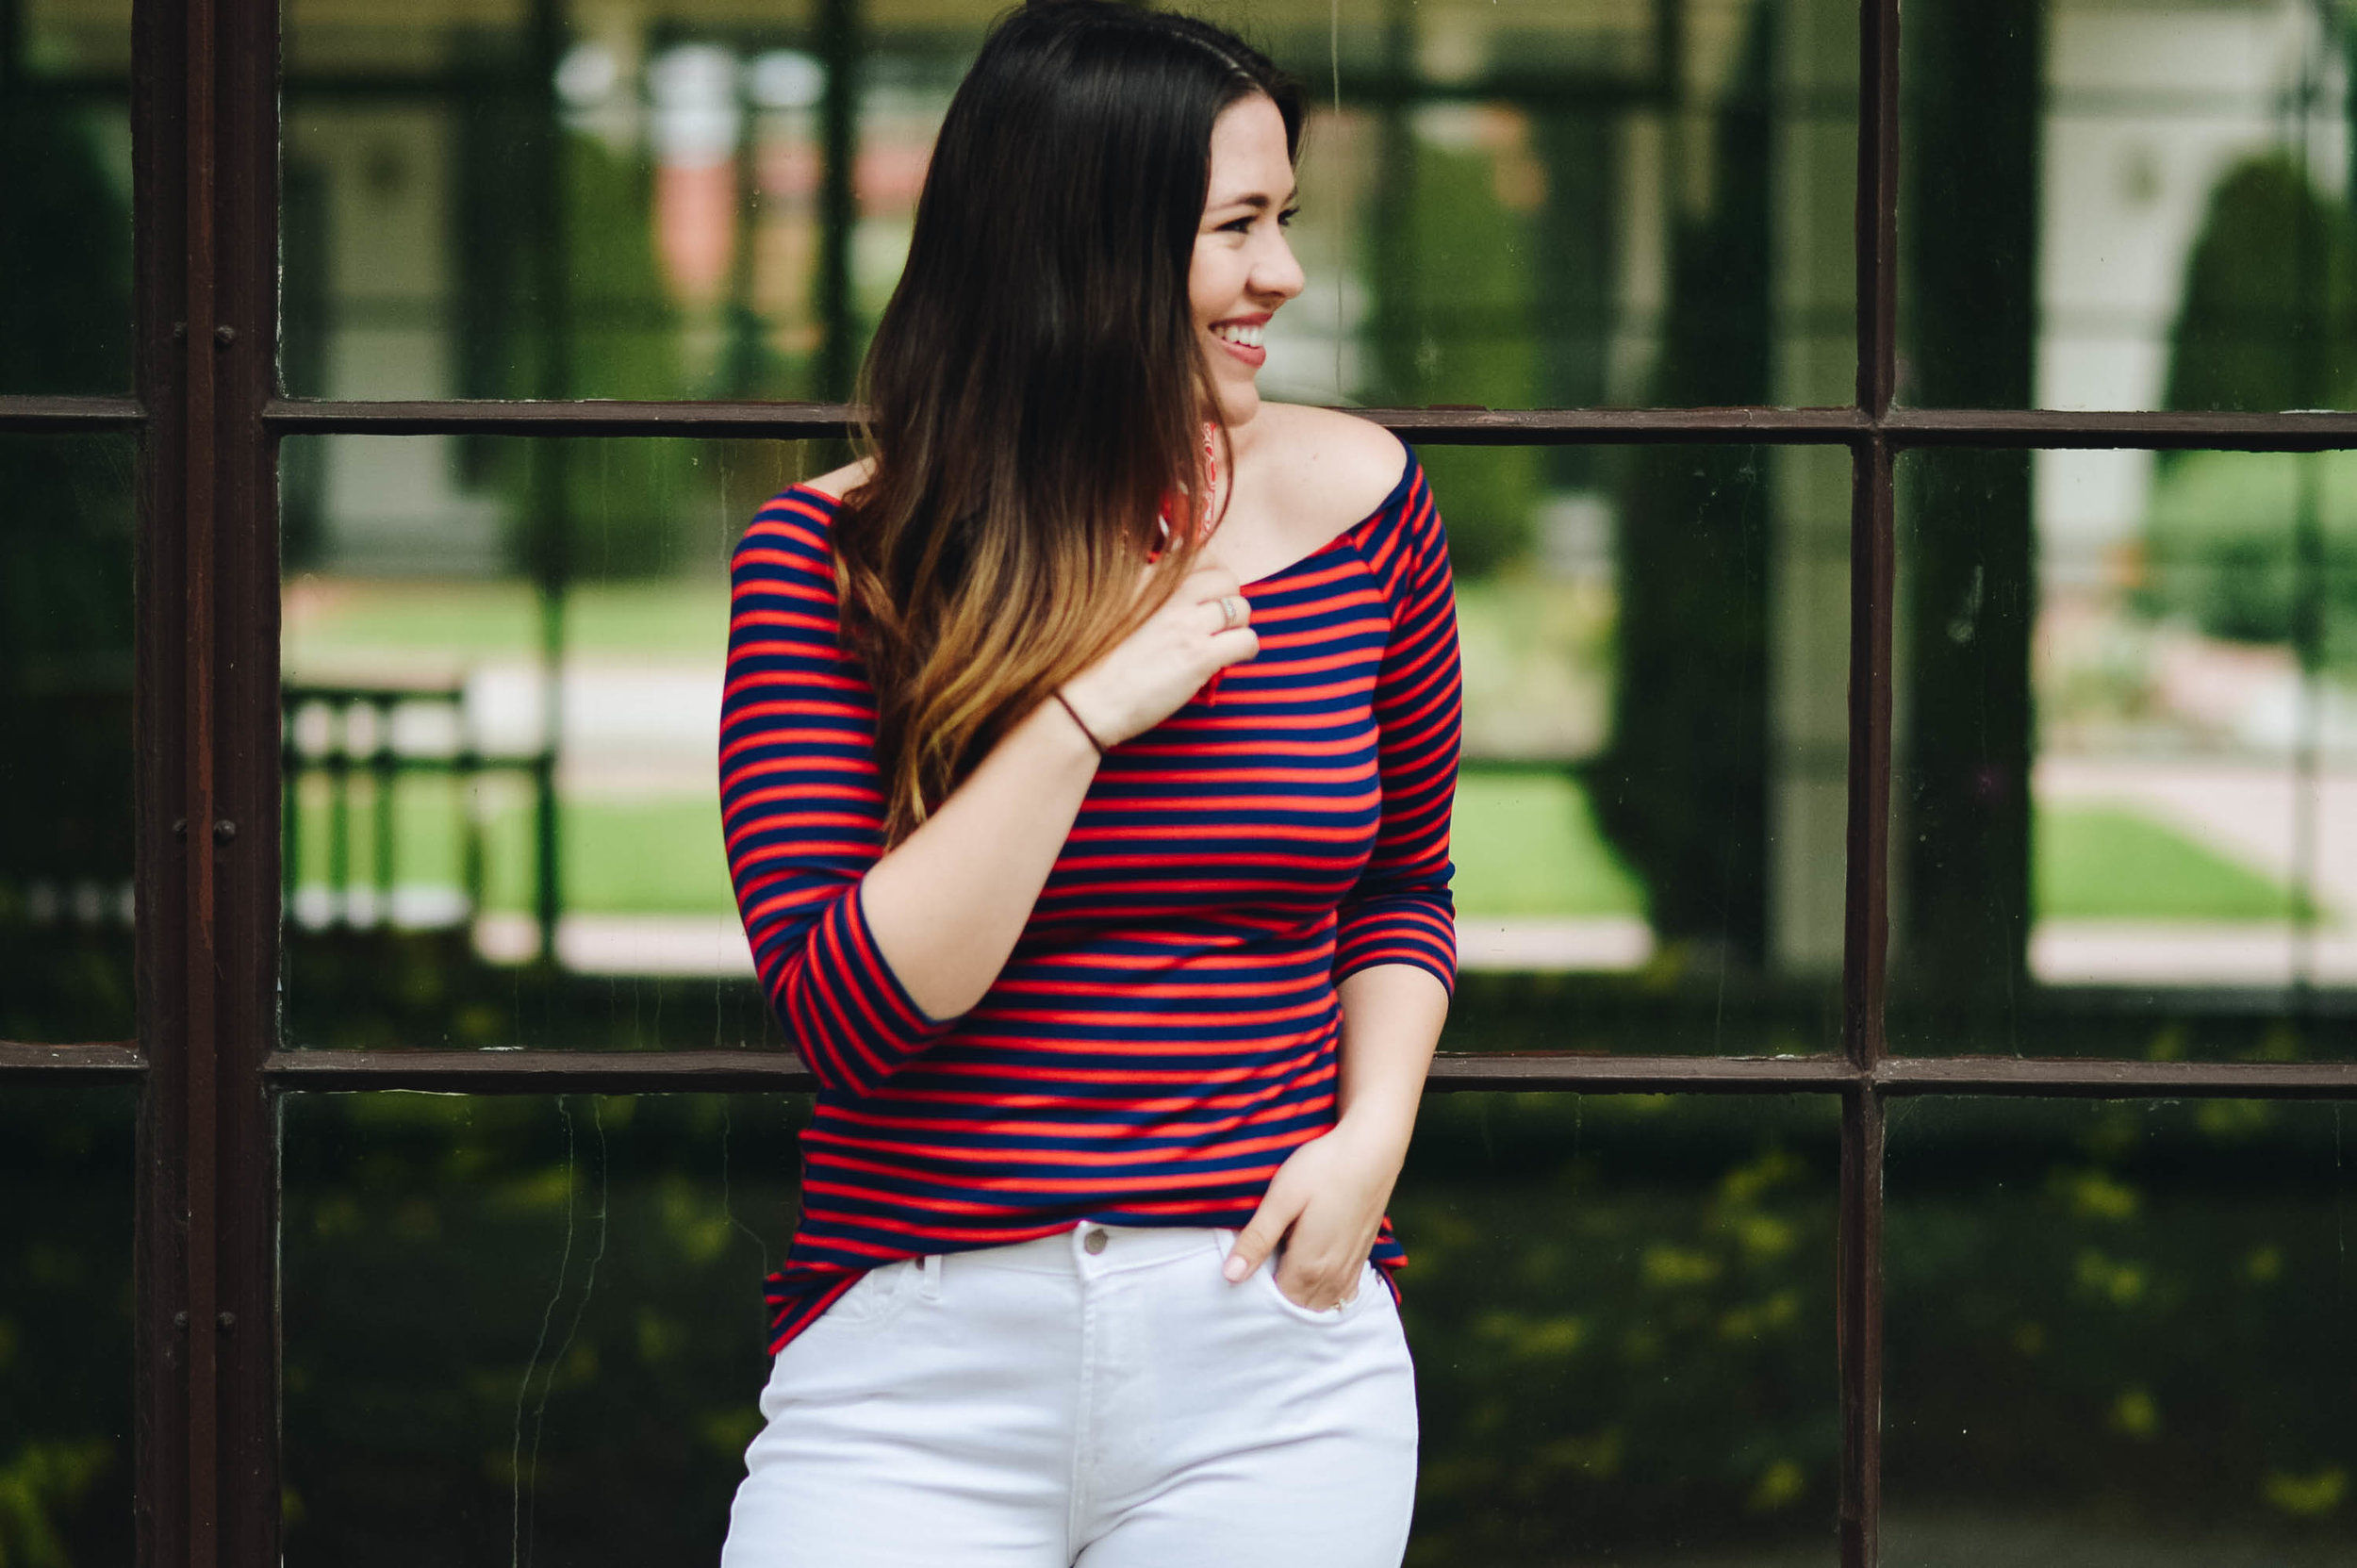 Nautical striped look | #SayHi To Spring with Old Navy via. www.birdieshoots.com